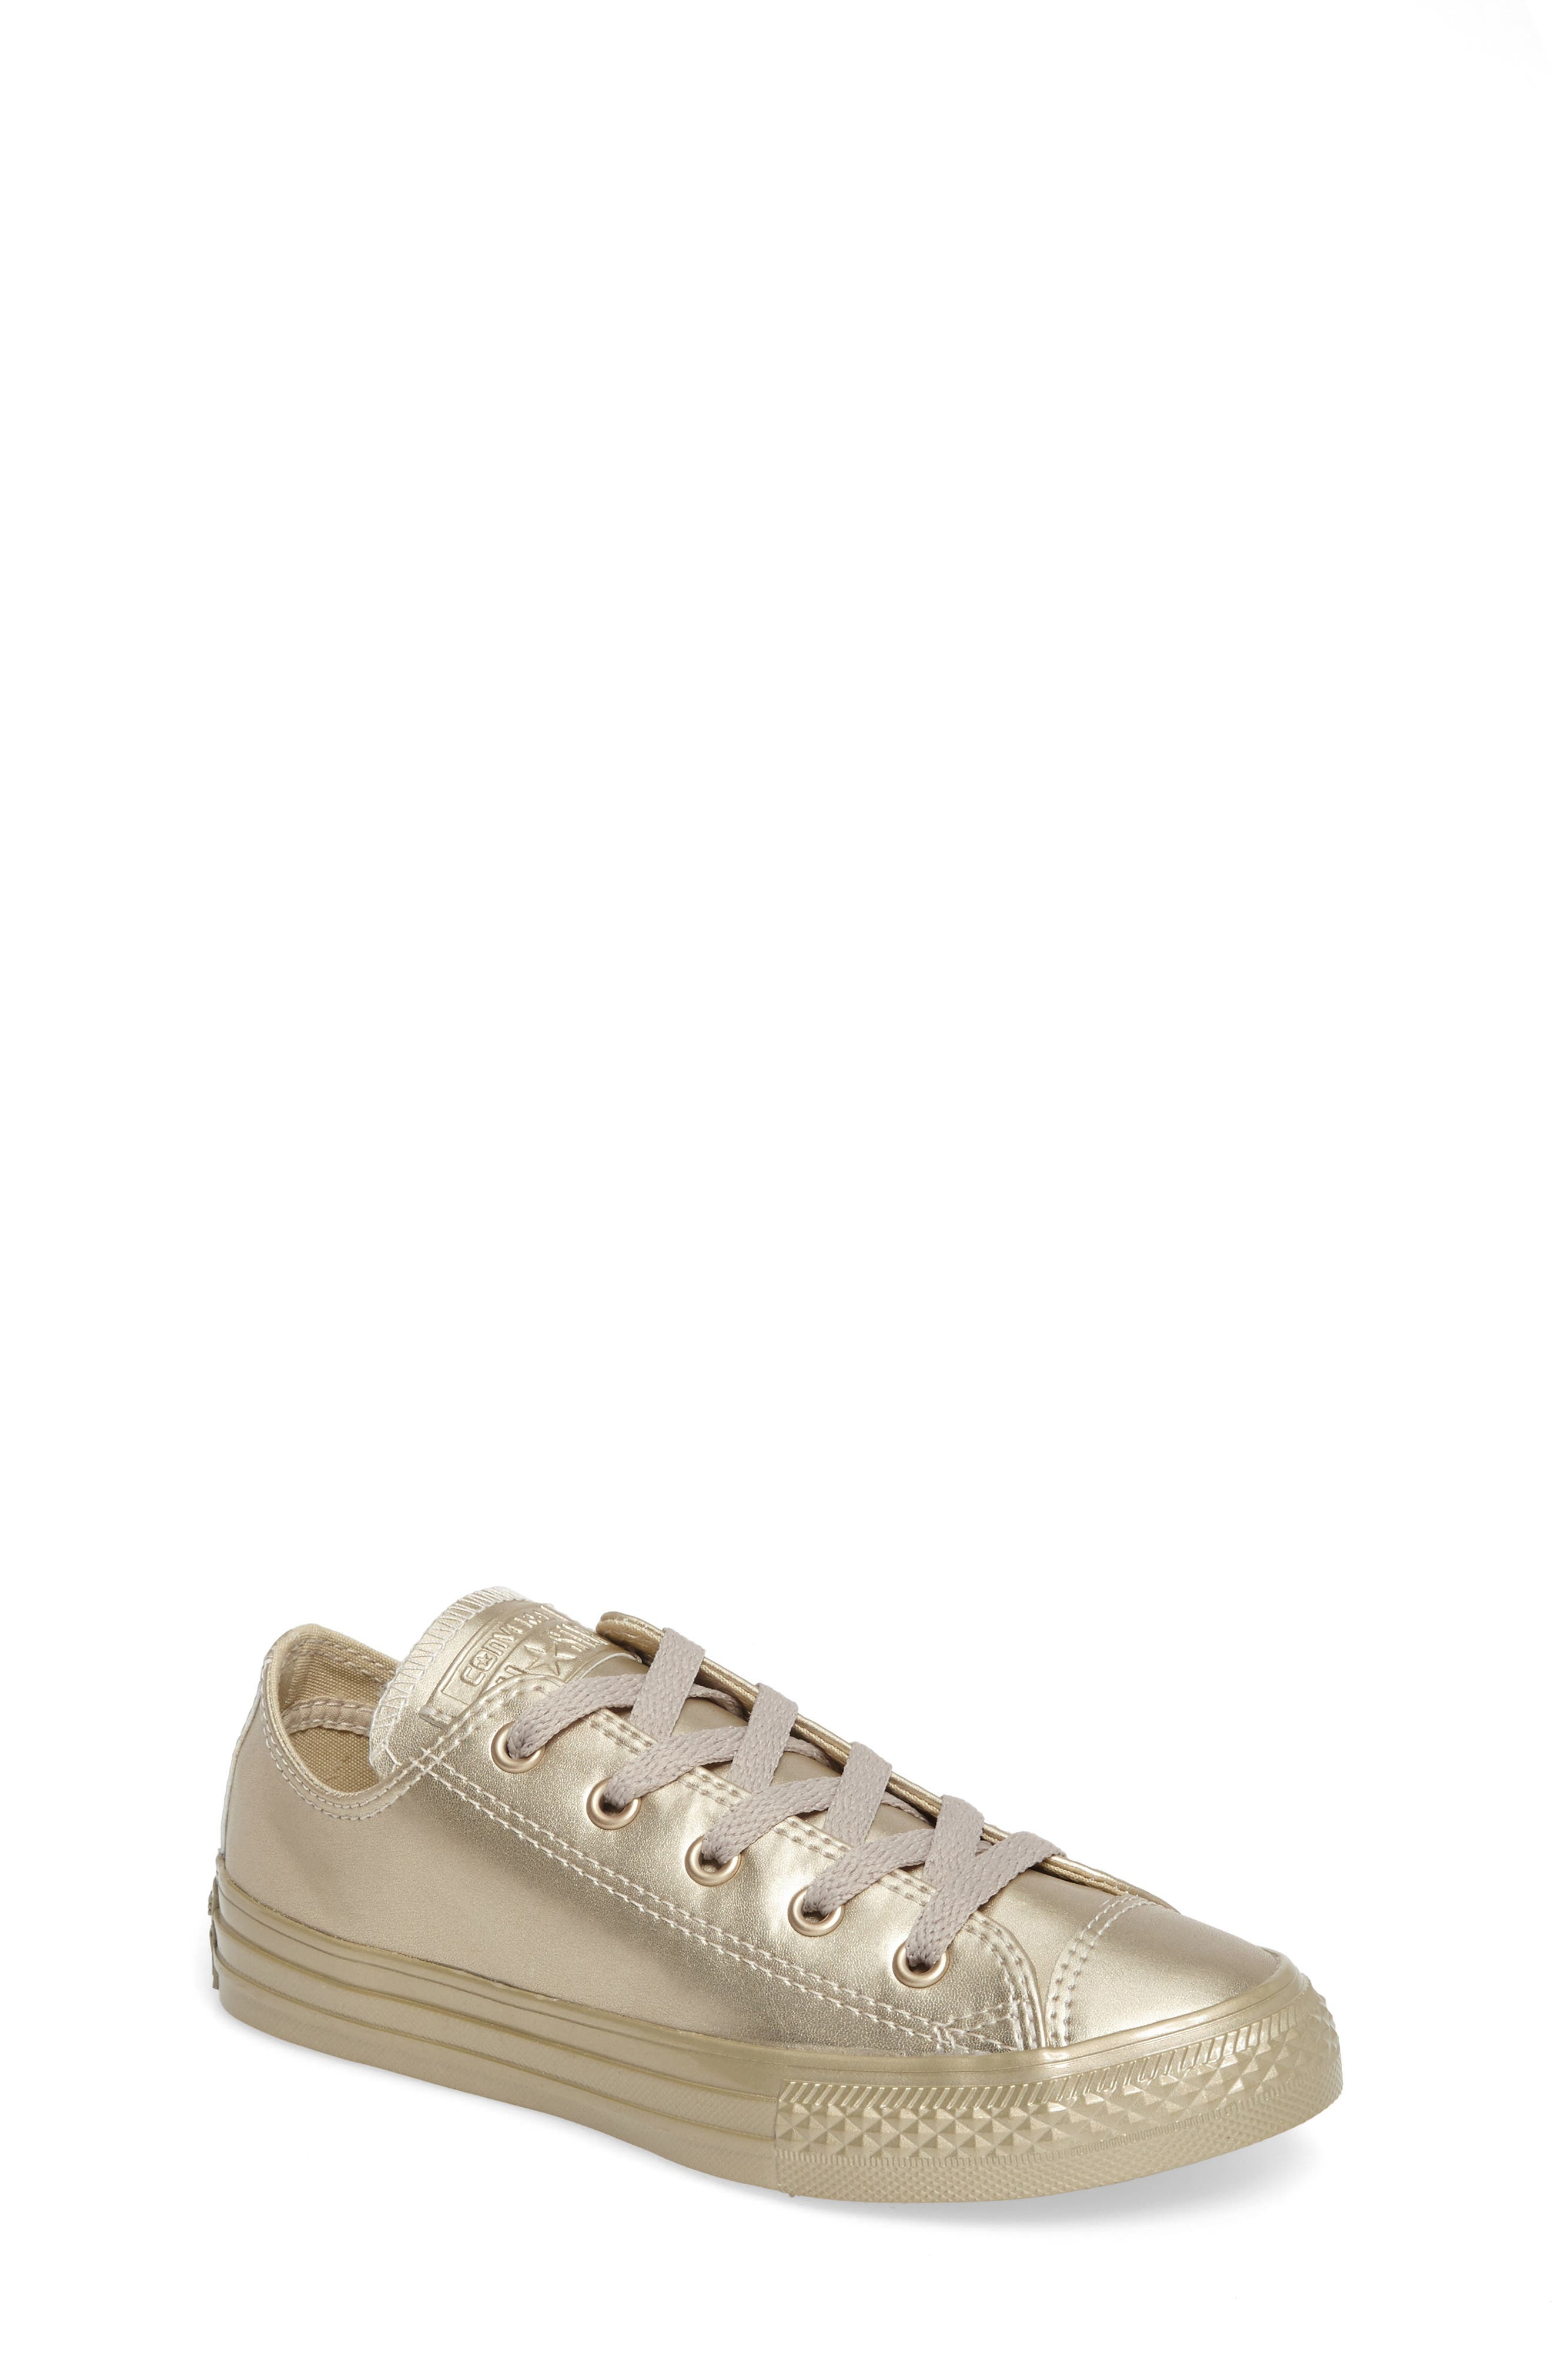 Alternate Image 1 Selected - Converse Chuck Taylor® All Star® Mono Metallic Low Top Sneaker (Toddler & Little Kid)